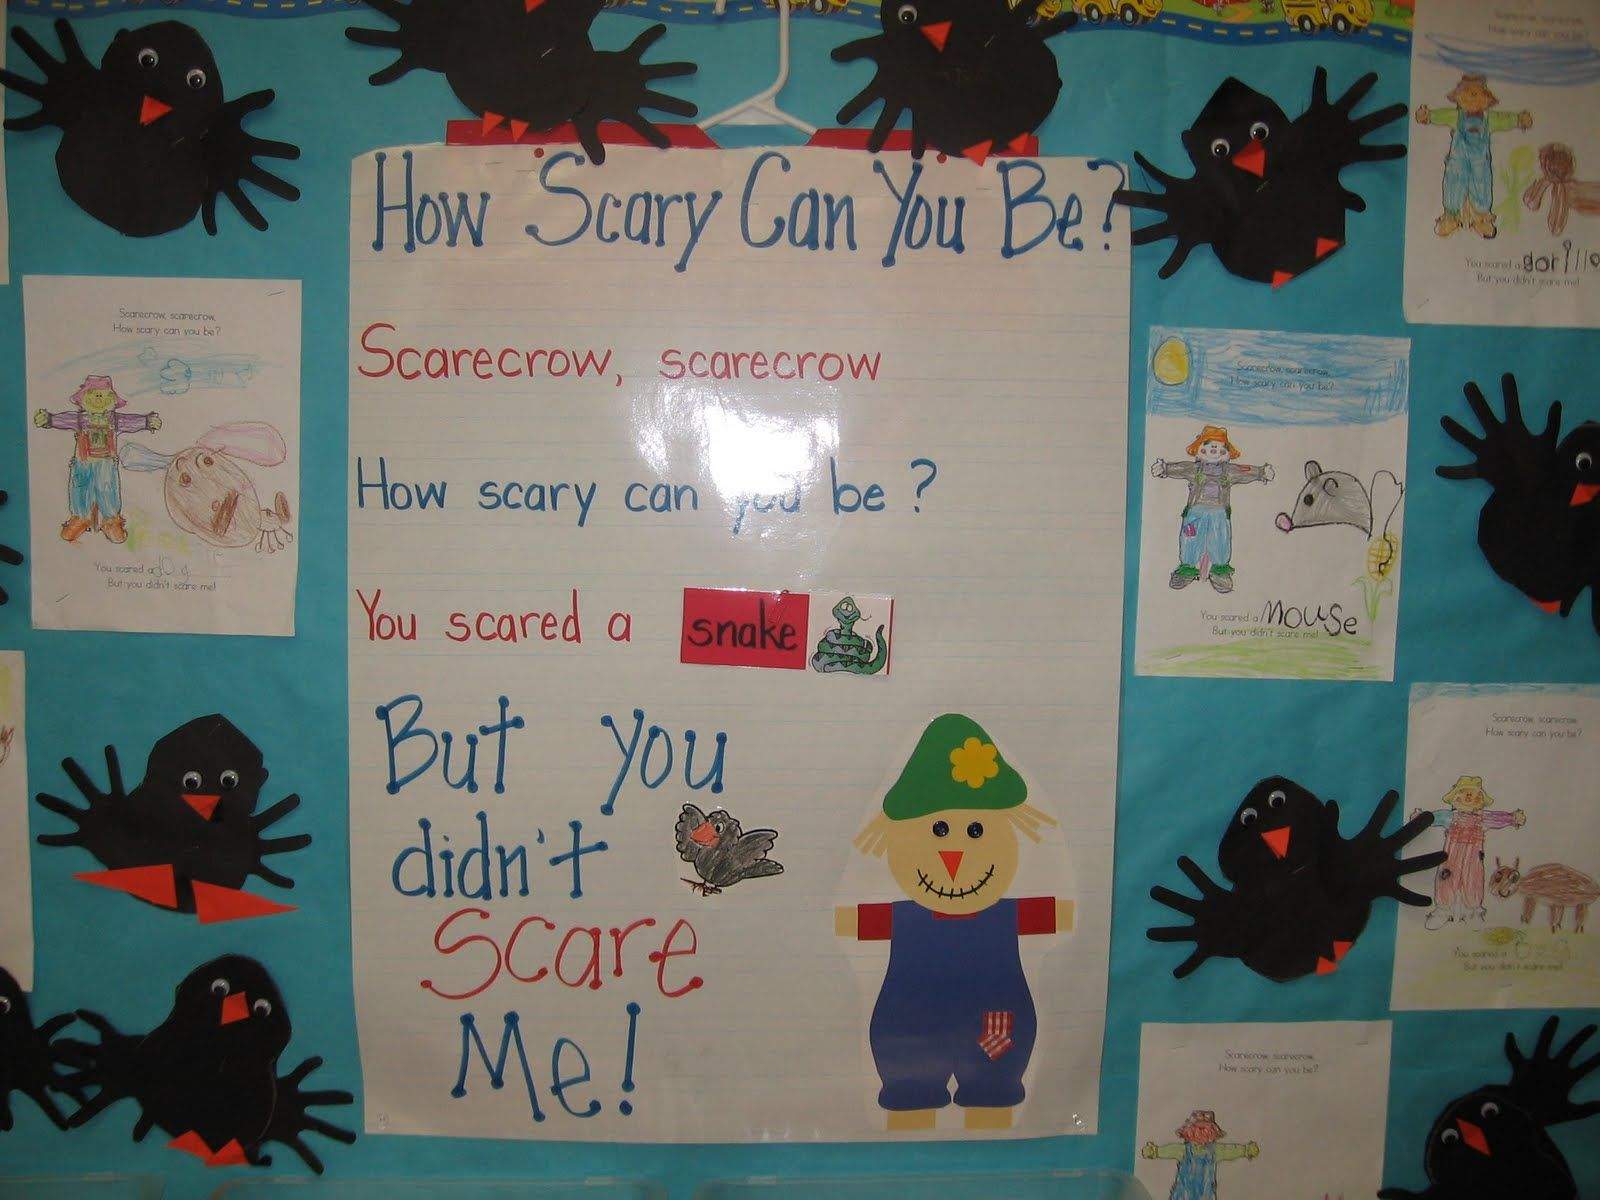 Scarecrow, Scarecrow- How scary can you be?- You scared a *snake ...